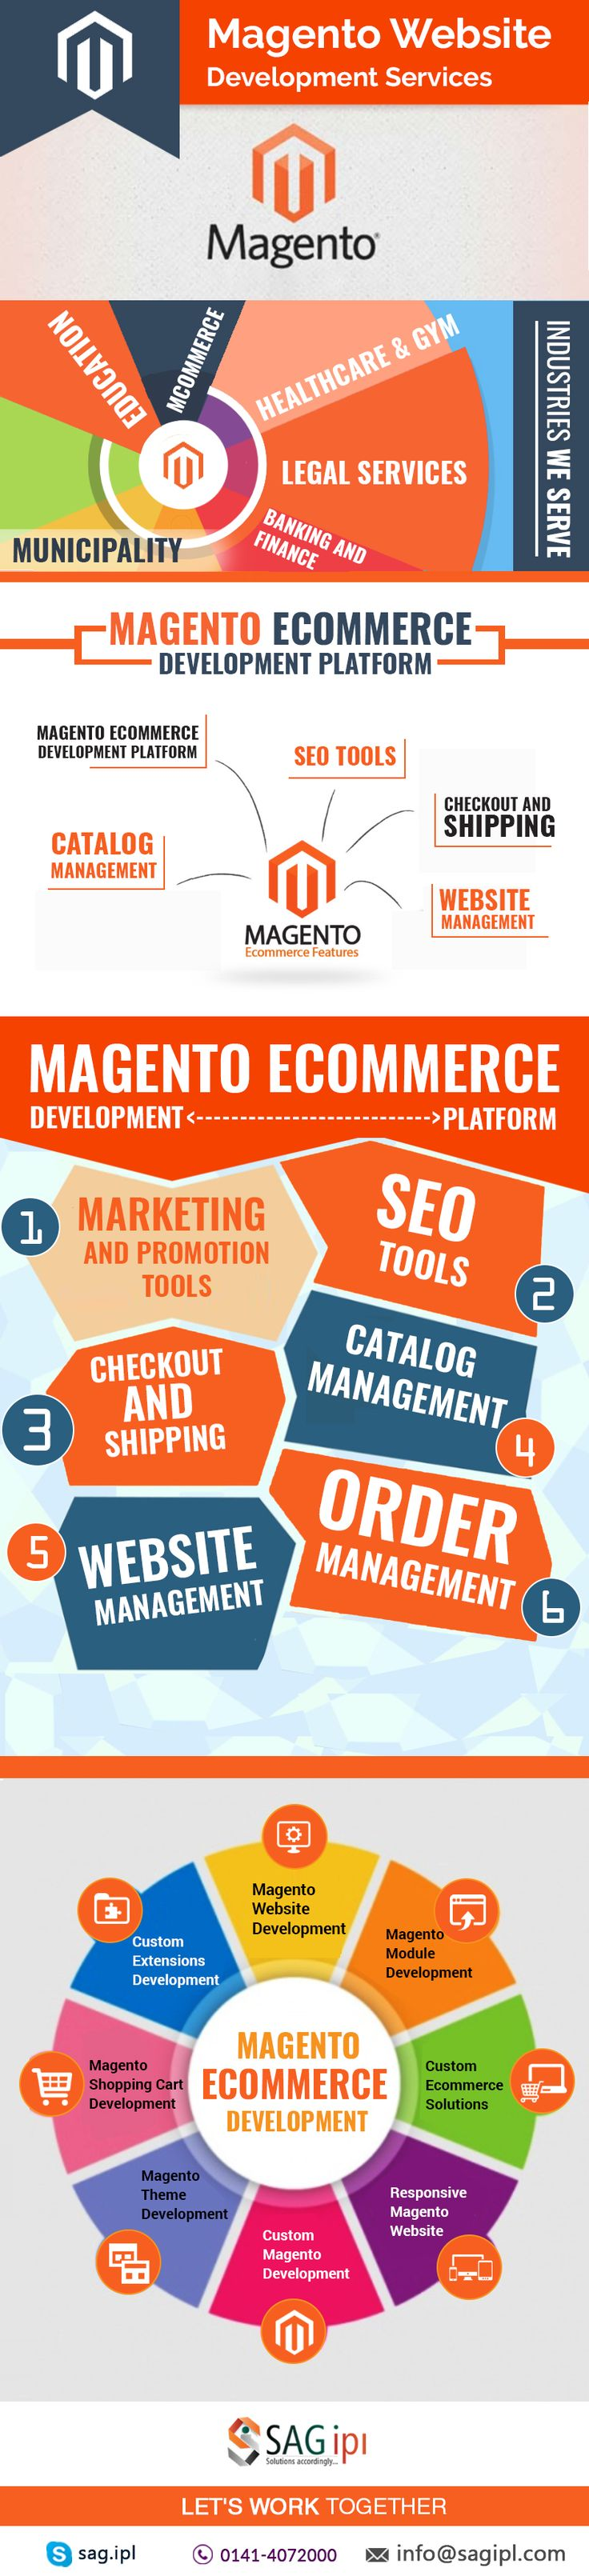 Magento eCommerce Development Company | SAG IPL    SAG IPL is Magento eCommerce Development Company which has 7+ years Experience in Magento Website Development. We offer Magento development services in the Worldwide.